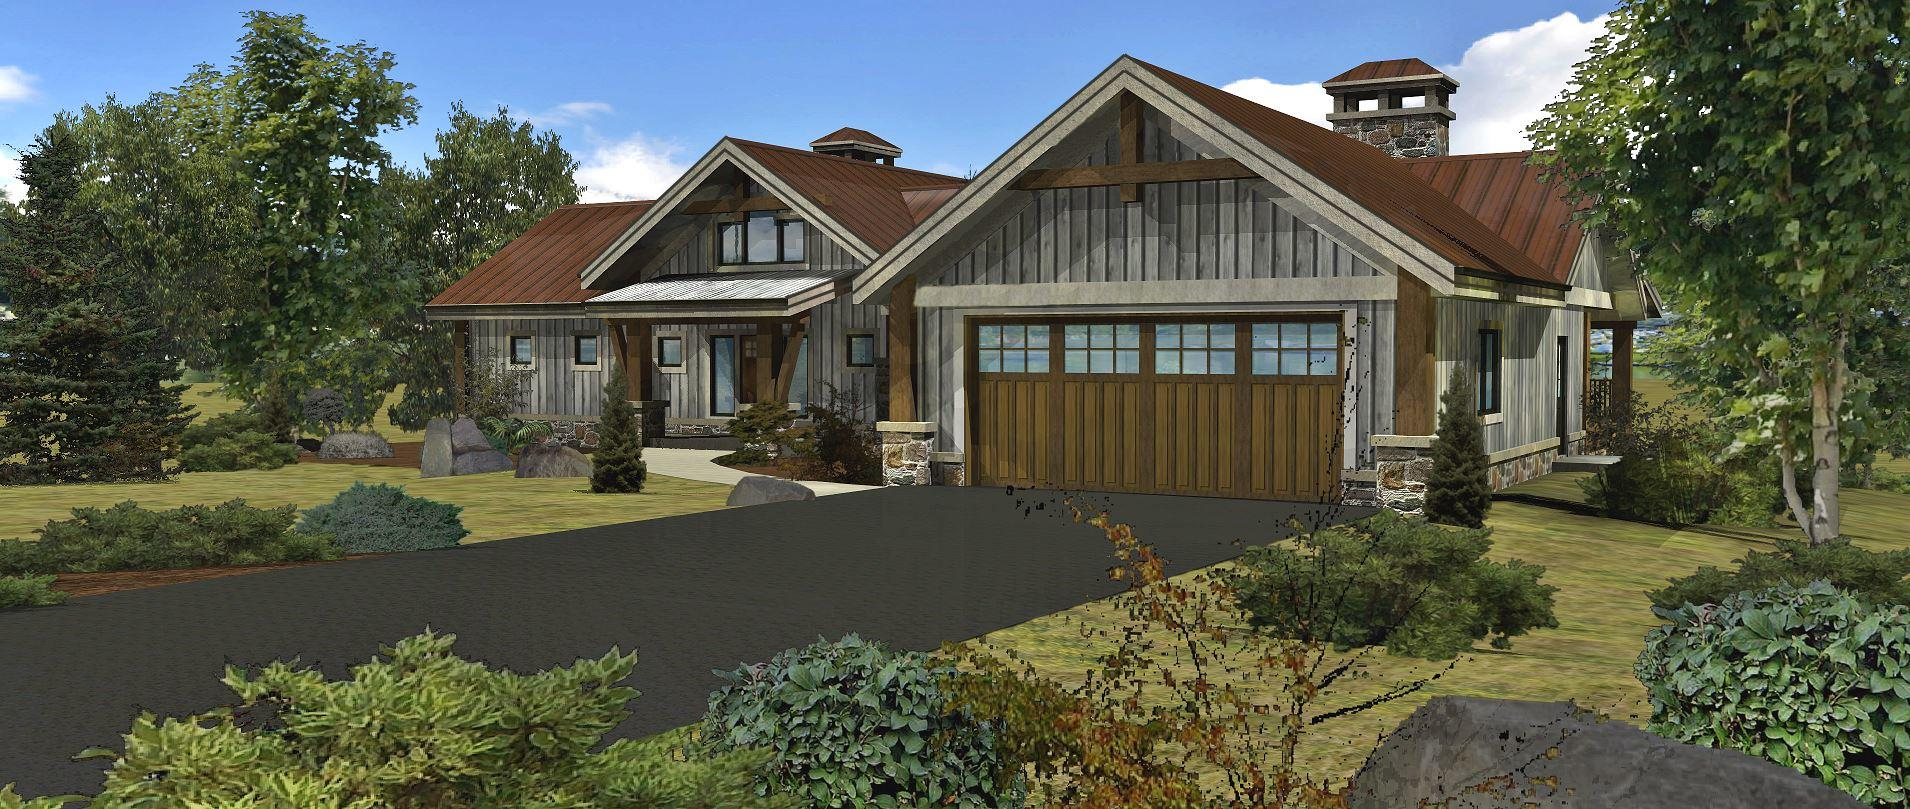 Bear River - Front Rendering by Wisconsin Log Homes 3